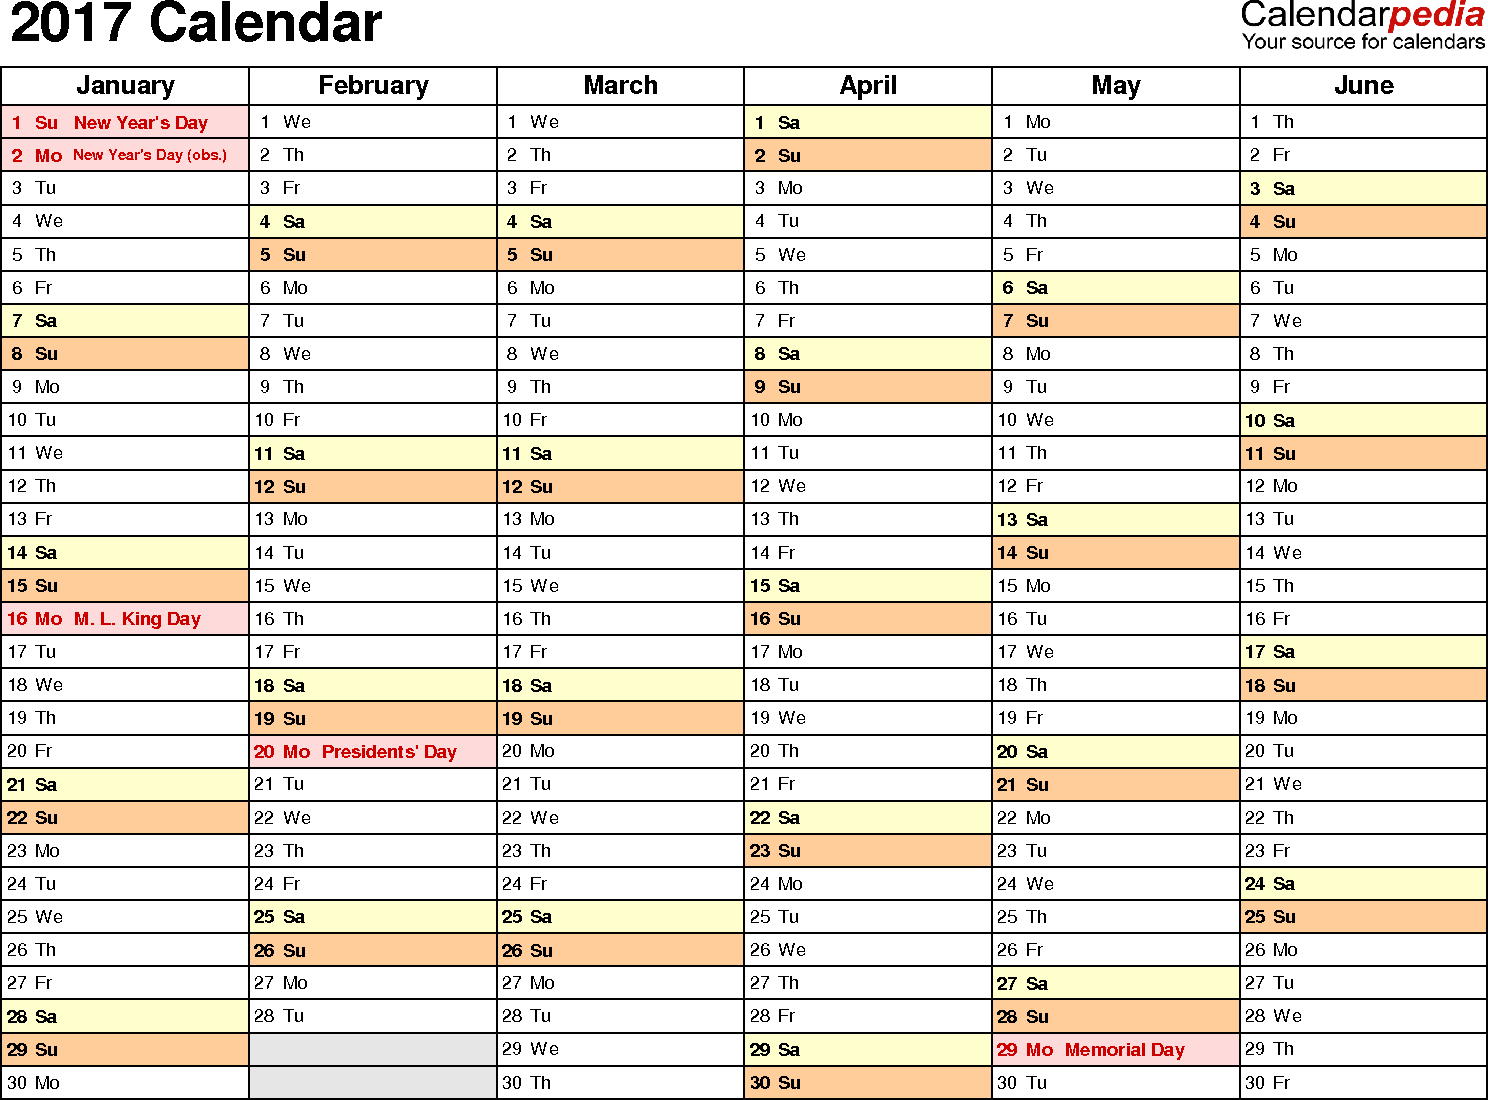 Ediblewildsus  Pretty  Calendar  Download  Free Printable Excel Templates Xls With Exciting Template   Calendar For Excel Months Horizontally  Pages Landscape Orientation With Endearing Excel Not Equal To Sign Also Discount Formula In Excel In Addition Excel Protect Cells  And Excel Insert Row With Formula As Well As Excel Date Format Day Of Week Additionally Use Of Excel From Calendarpediacom With Ediblewildsus  Exciting  Calendar  Download  Free Printable Excel Templates Xls With Endearing Template   Calendar For Excel Months Horizontally  Pages Landscape Orientation And Pretty Excel Not Equal To Sign Also Discount Formula In Excel In Addition Excel Protect Cells  From Calendarpediacom